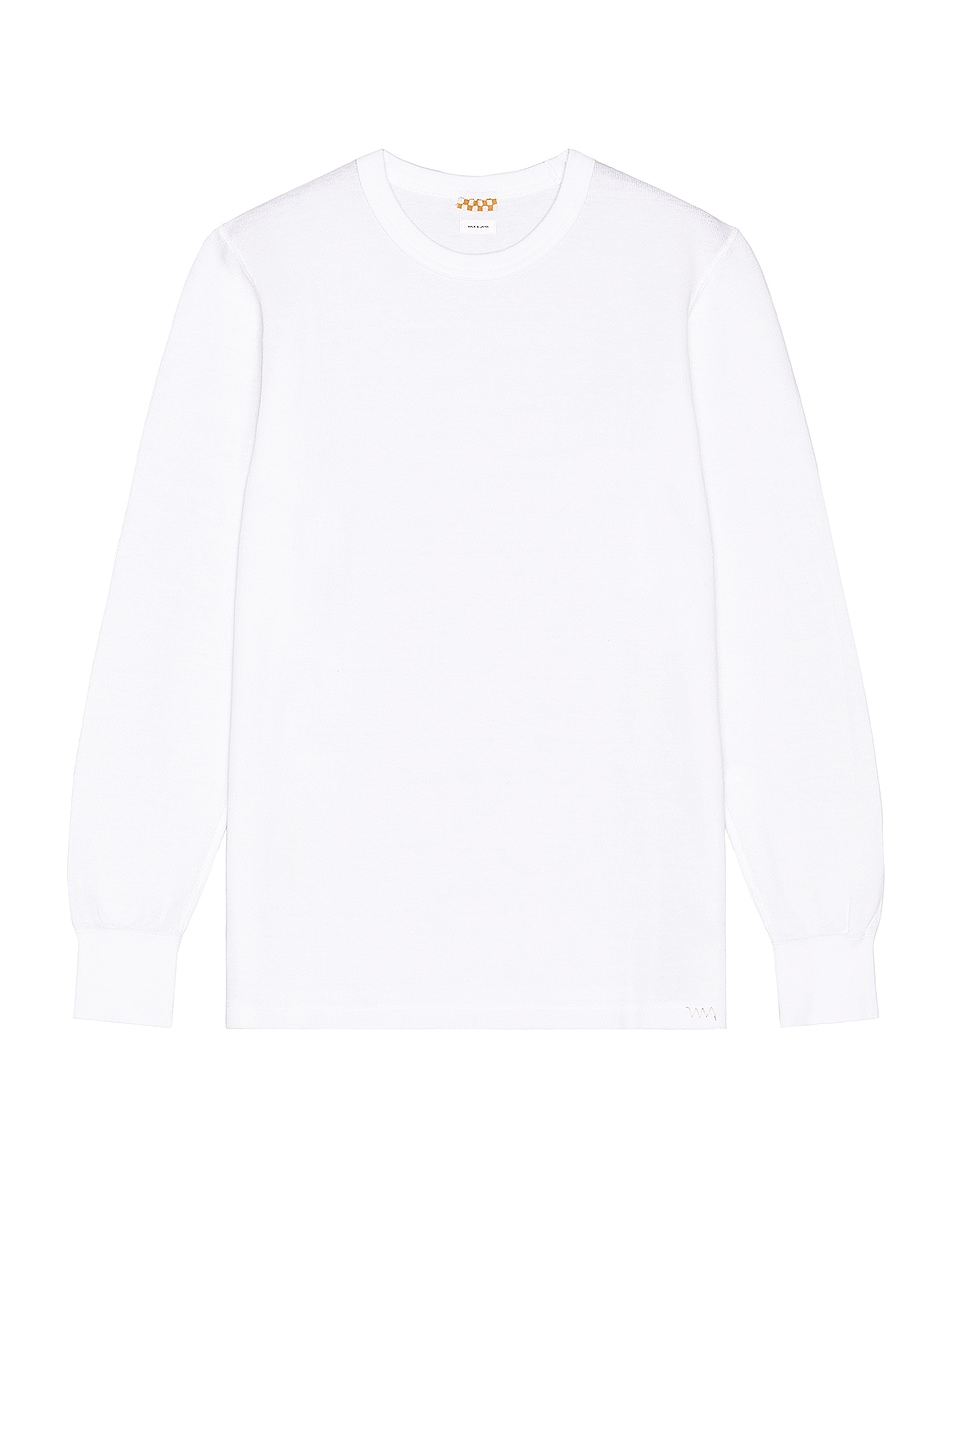 Image 1 of Visvim Sublig Ribs Long Sleeve Crewneck in White